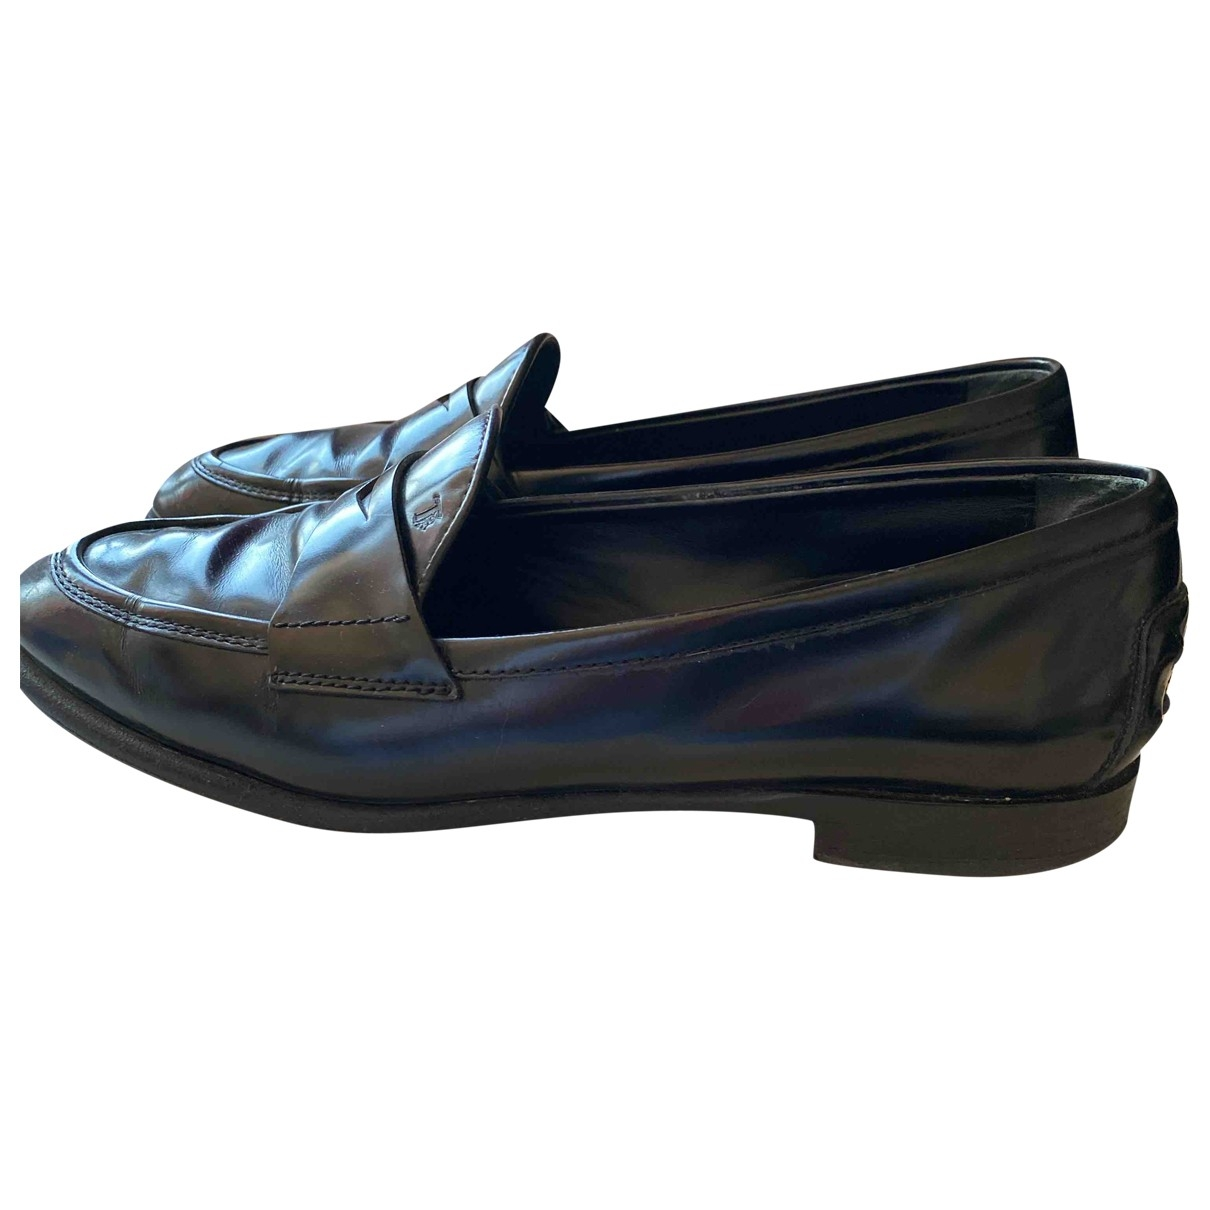 Tod's Gommino Black Leather Flats for Women 38 EU